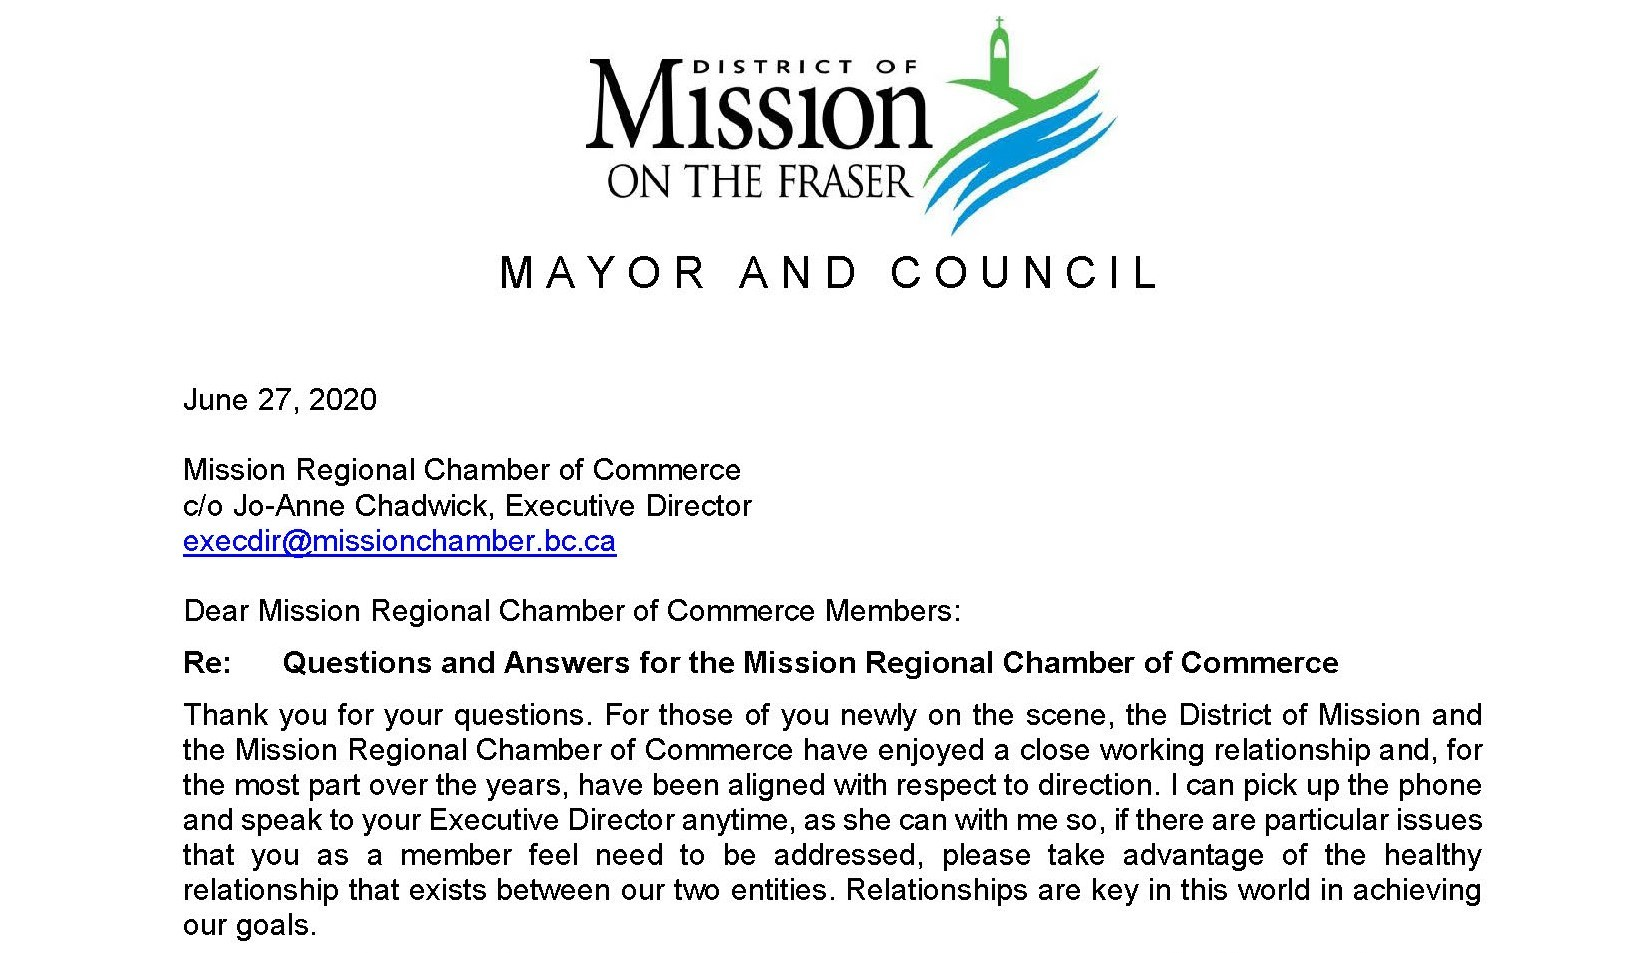 District of Mission Responses to Business Walk Survey 2020